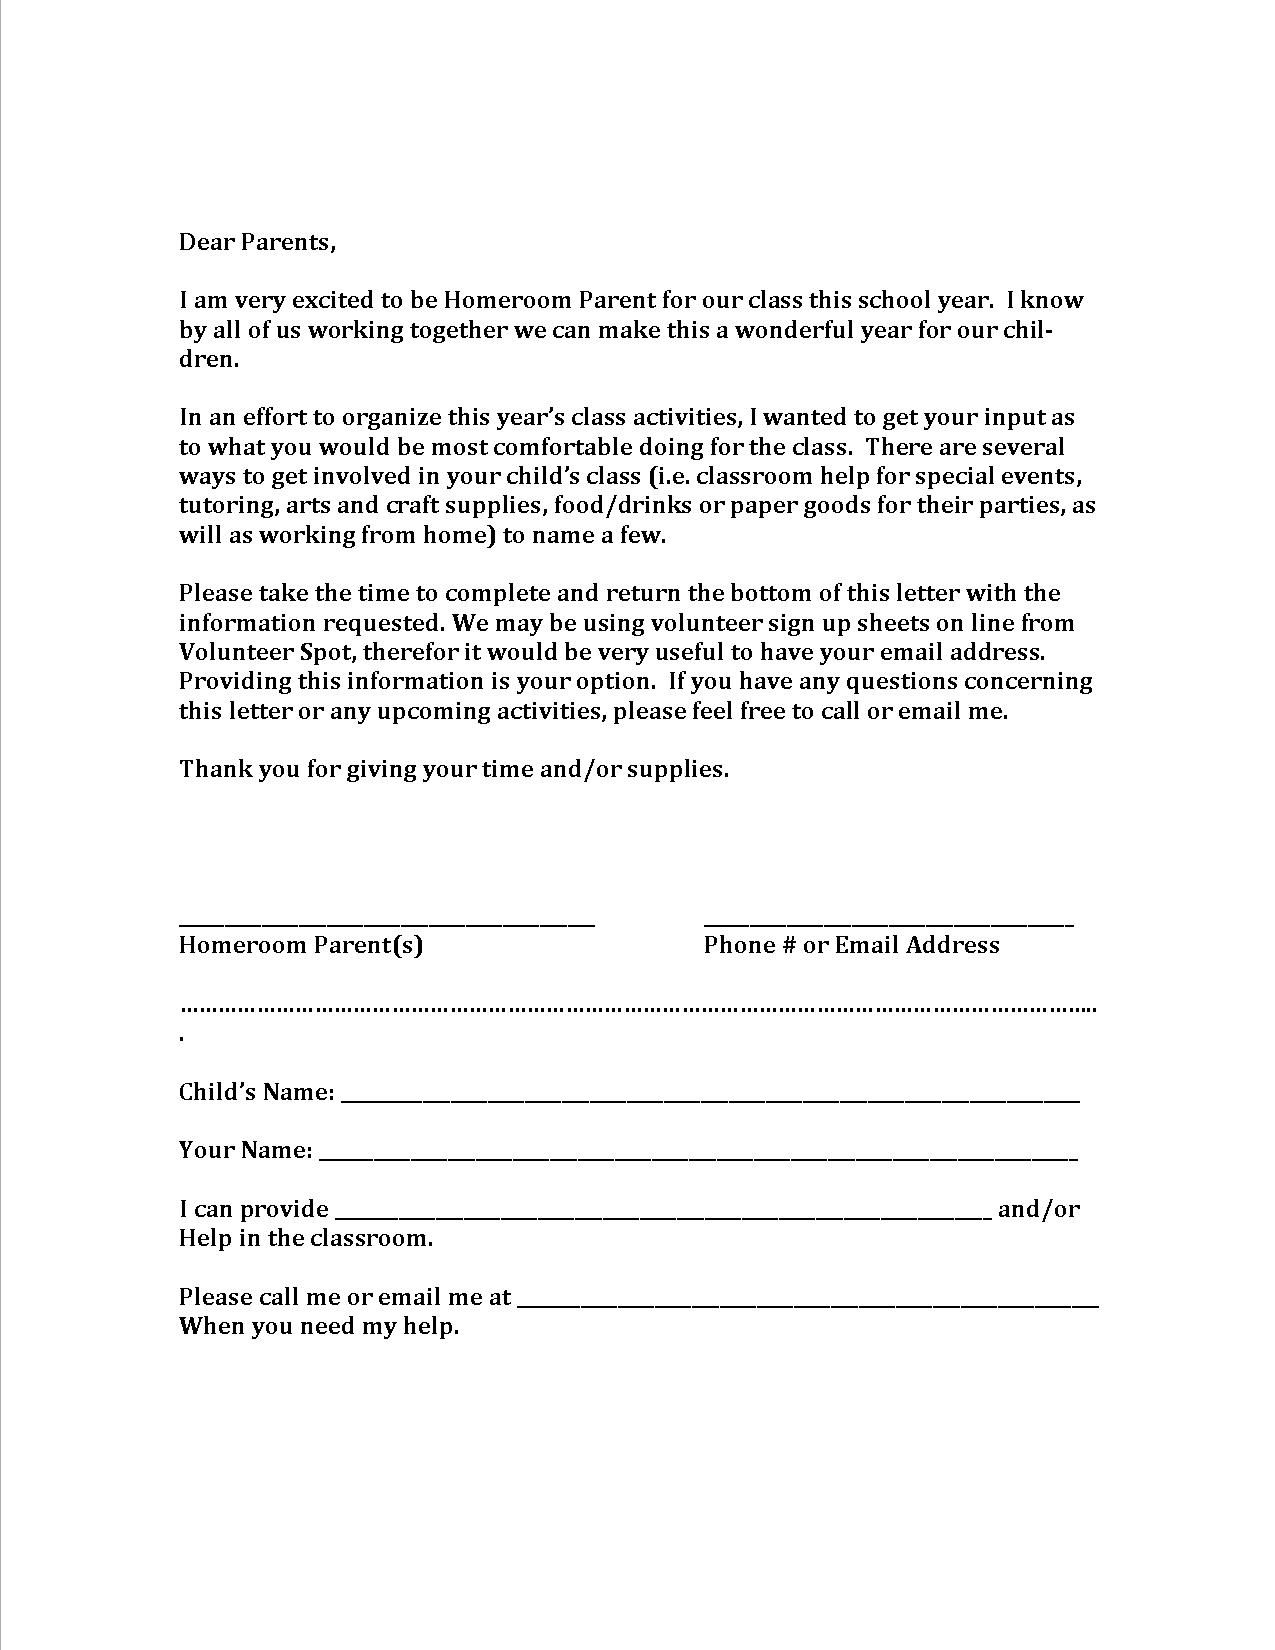 Awesome Volunteer Letter Template HDVolunteer Letter Template Application Letter  Sample